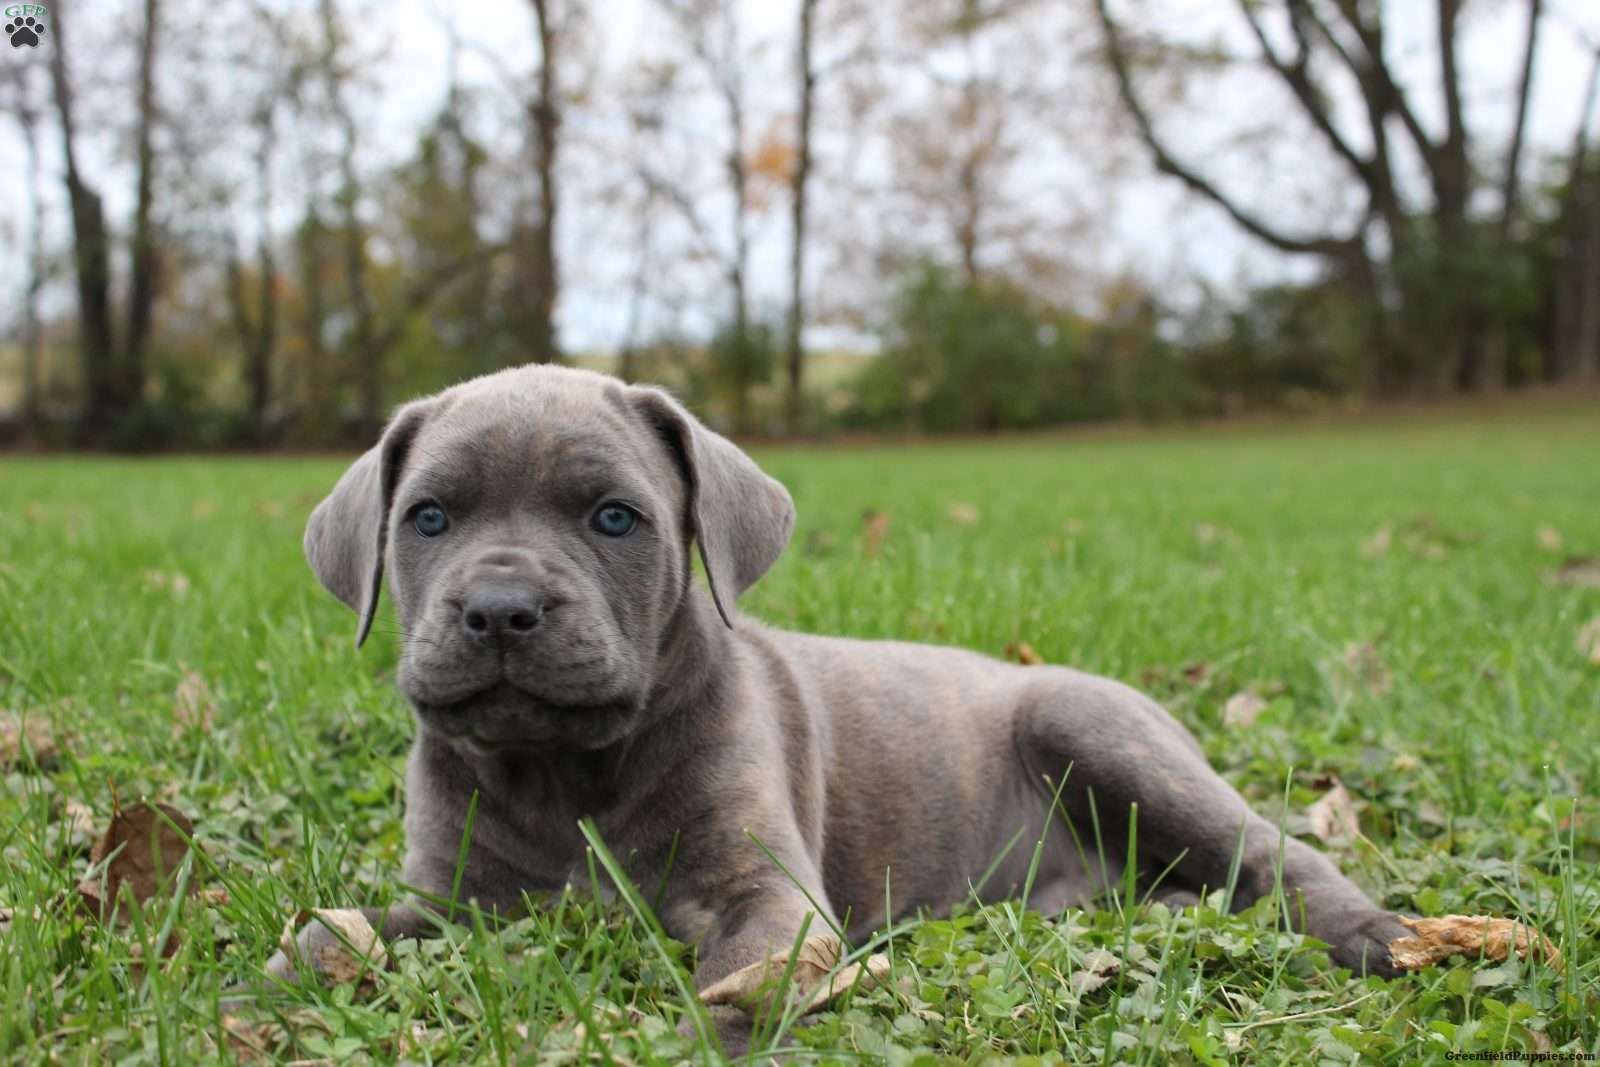 Rivers Cane Corso Puppy For Sale in Pennsylvania (With